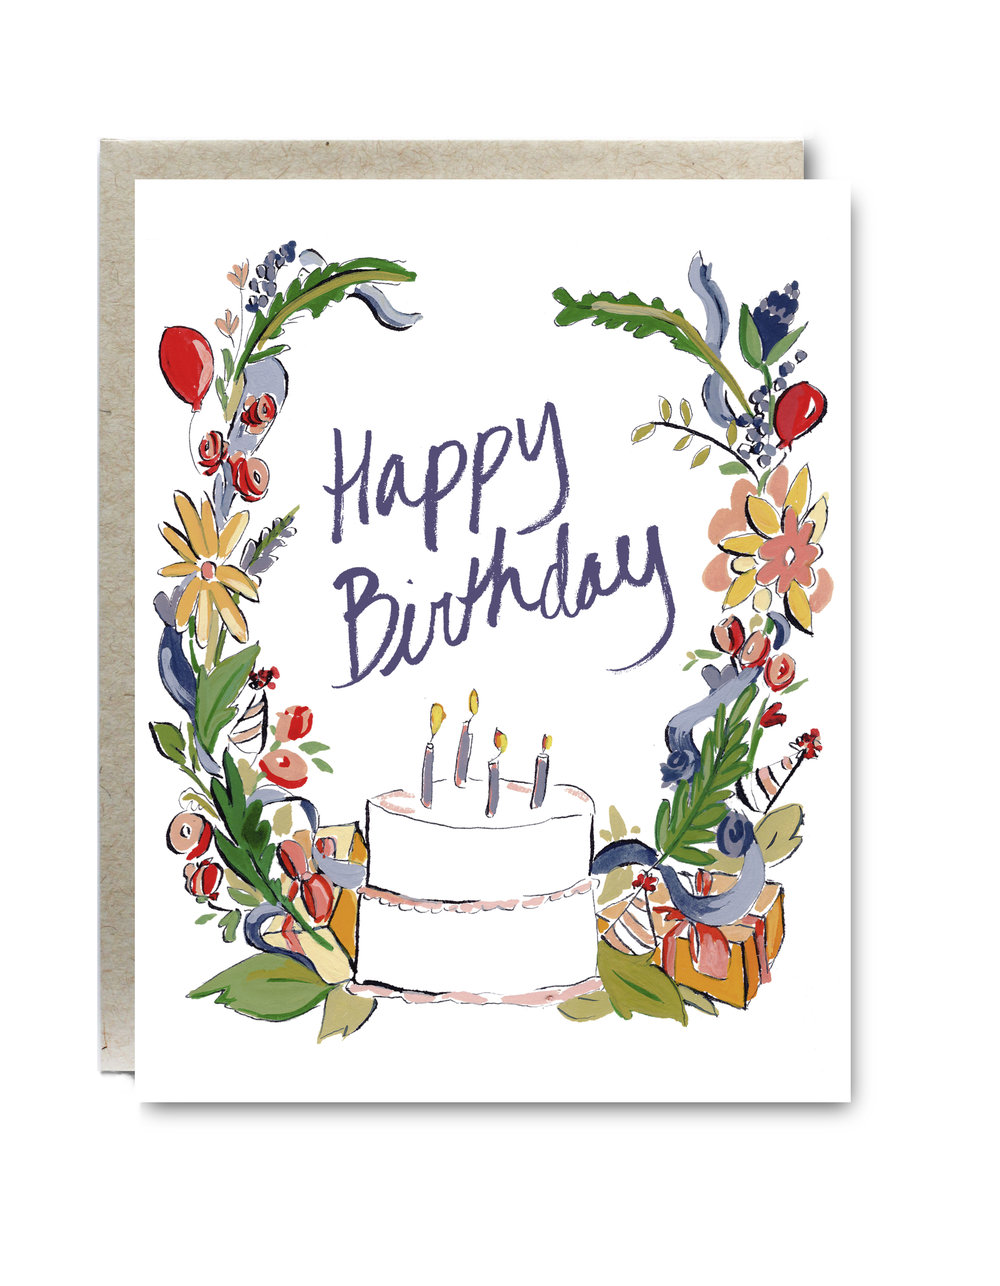 Happy Birthday Cake Card- $5.00